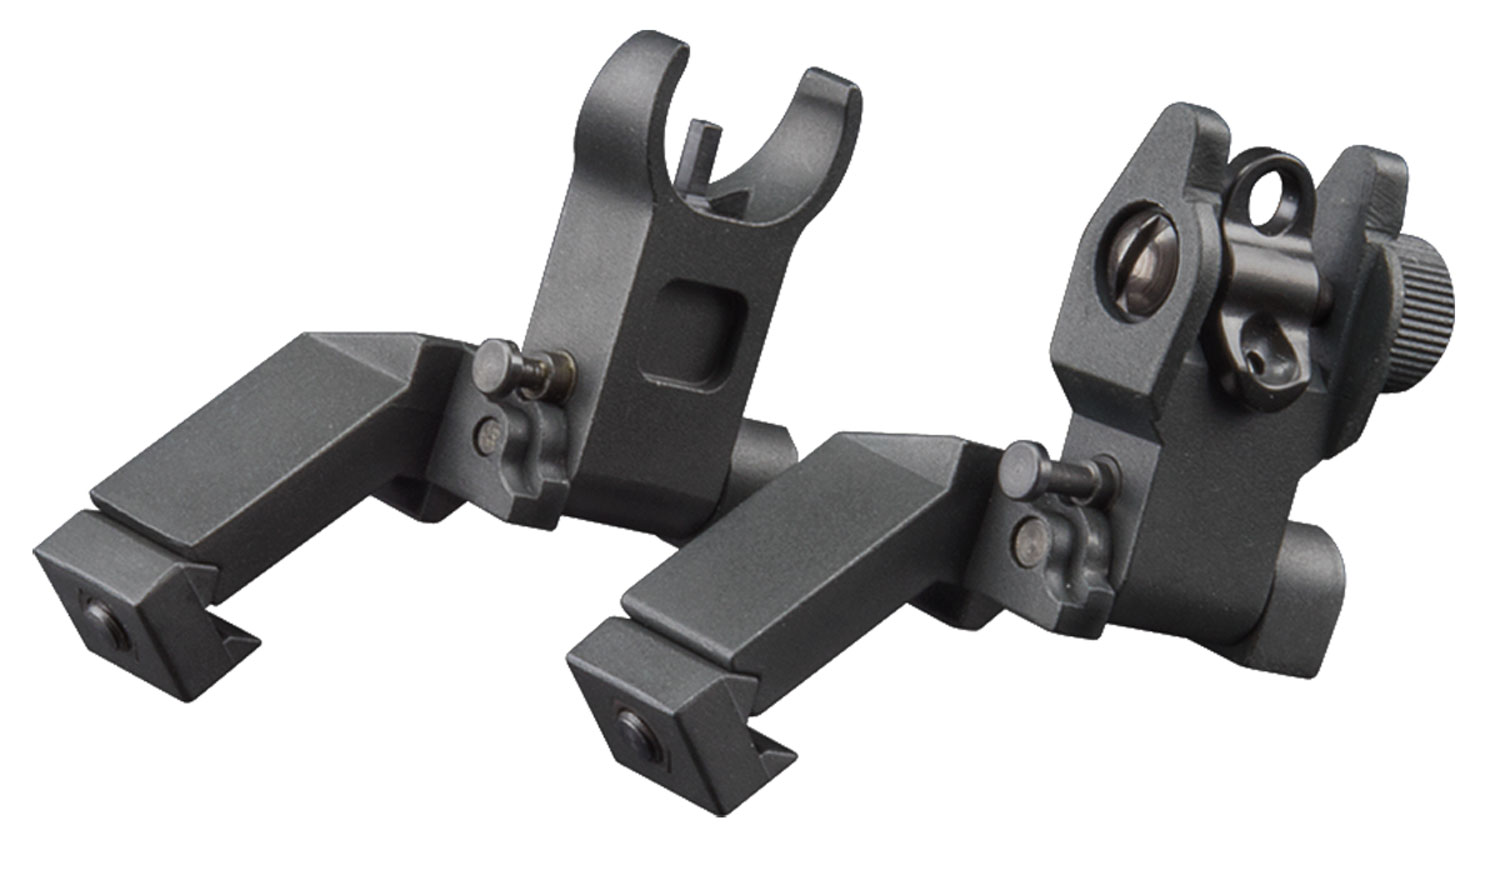 Aim Sports MT45FS 45 Degree Low Profile AR Flip Up Sights Aluminum Black